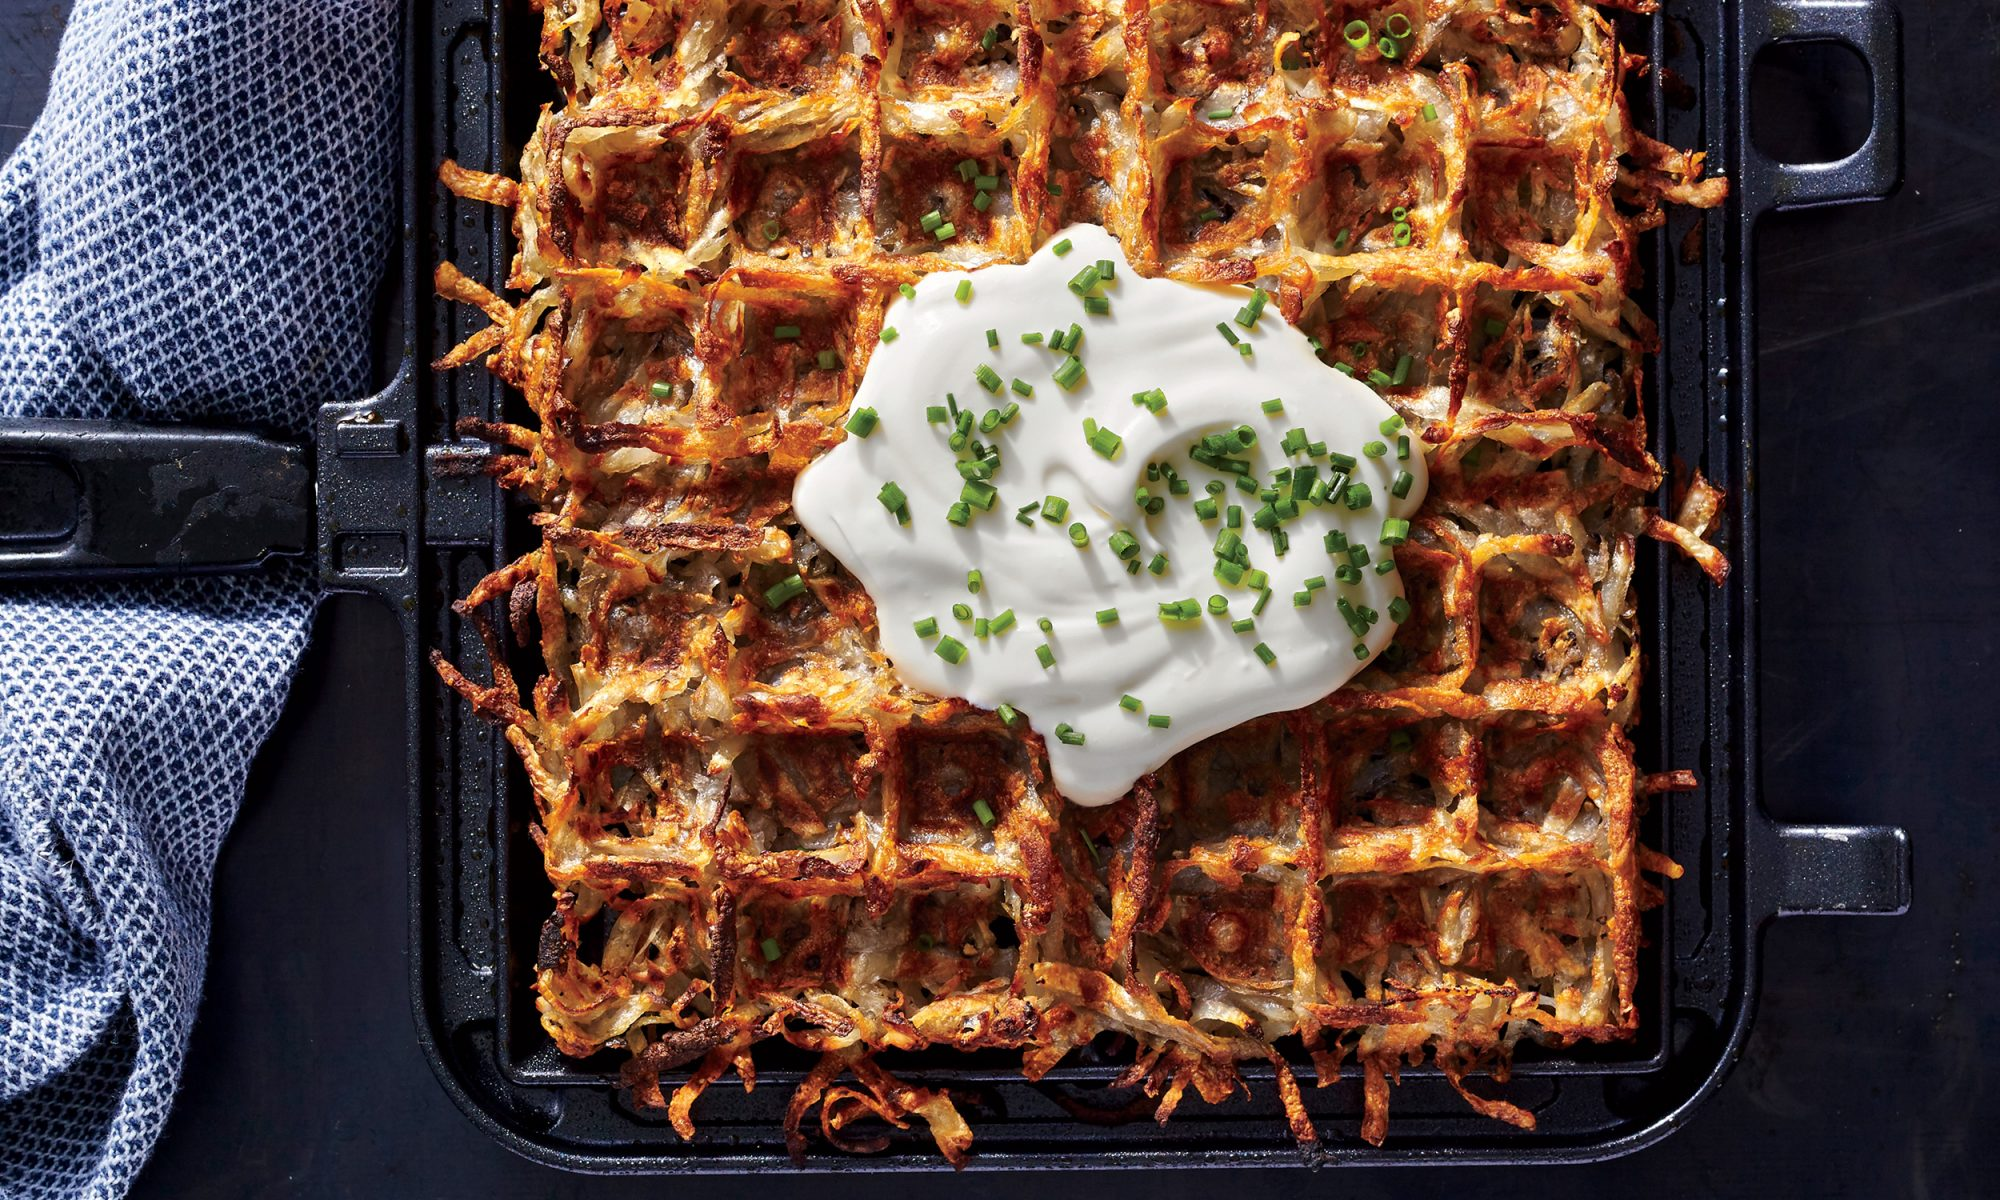 The World's Crispiest Hash Browns Come from a Waffle Iron